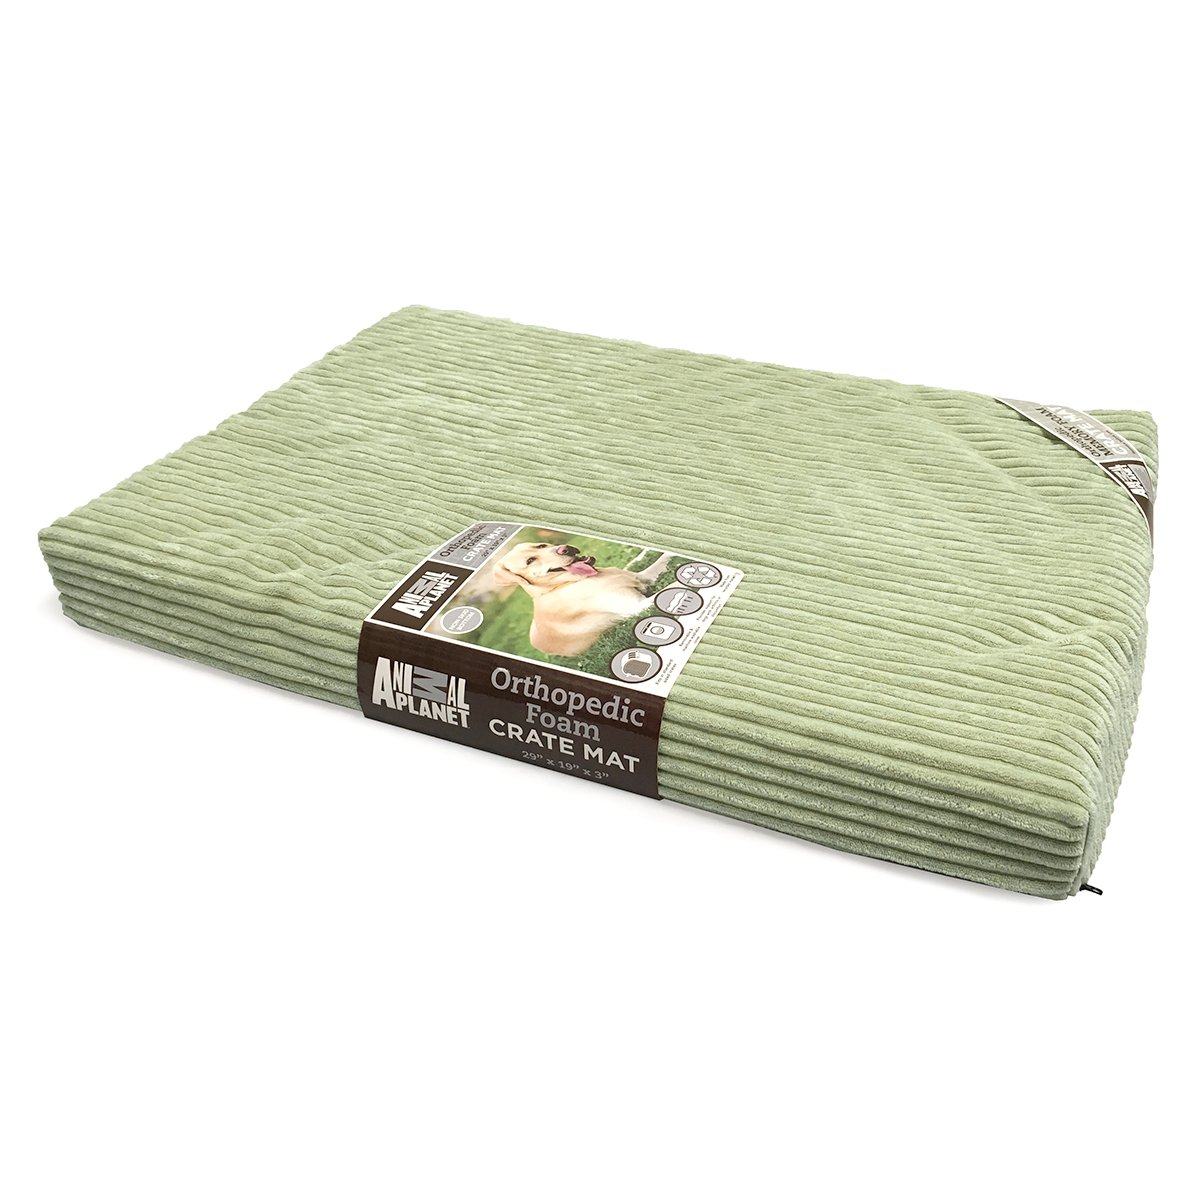 Animal Planet Orthopedic Pet Bed, 40''x26''x3'', Sage